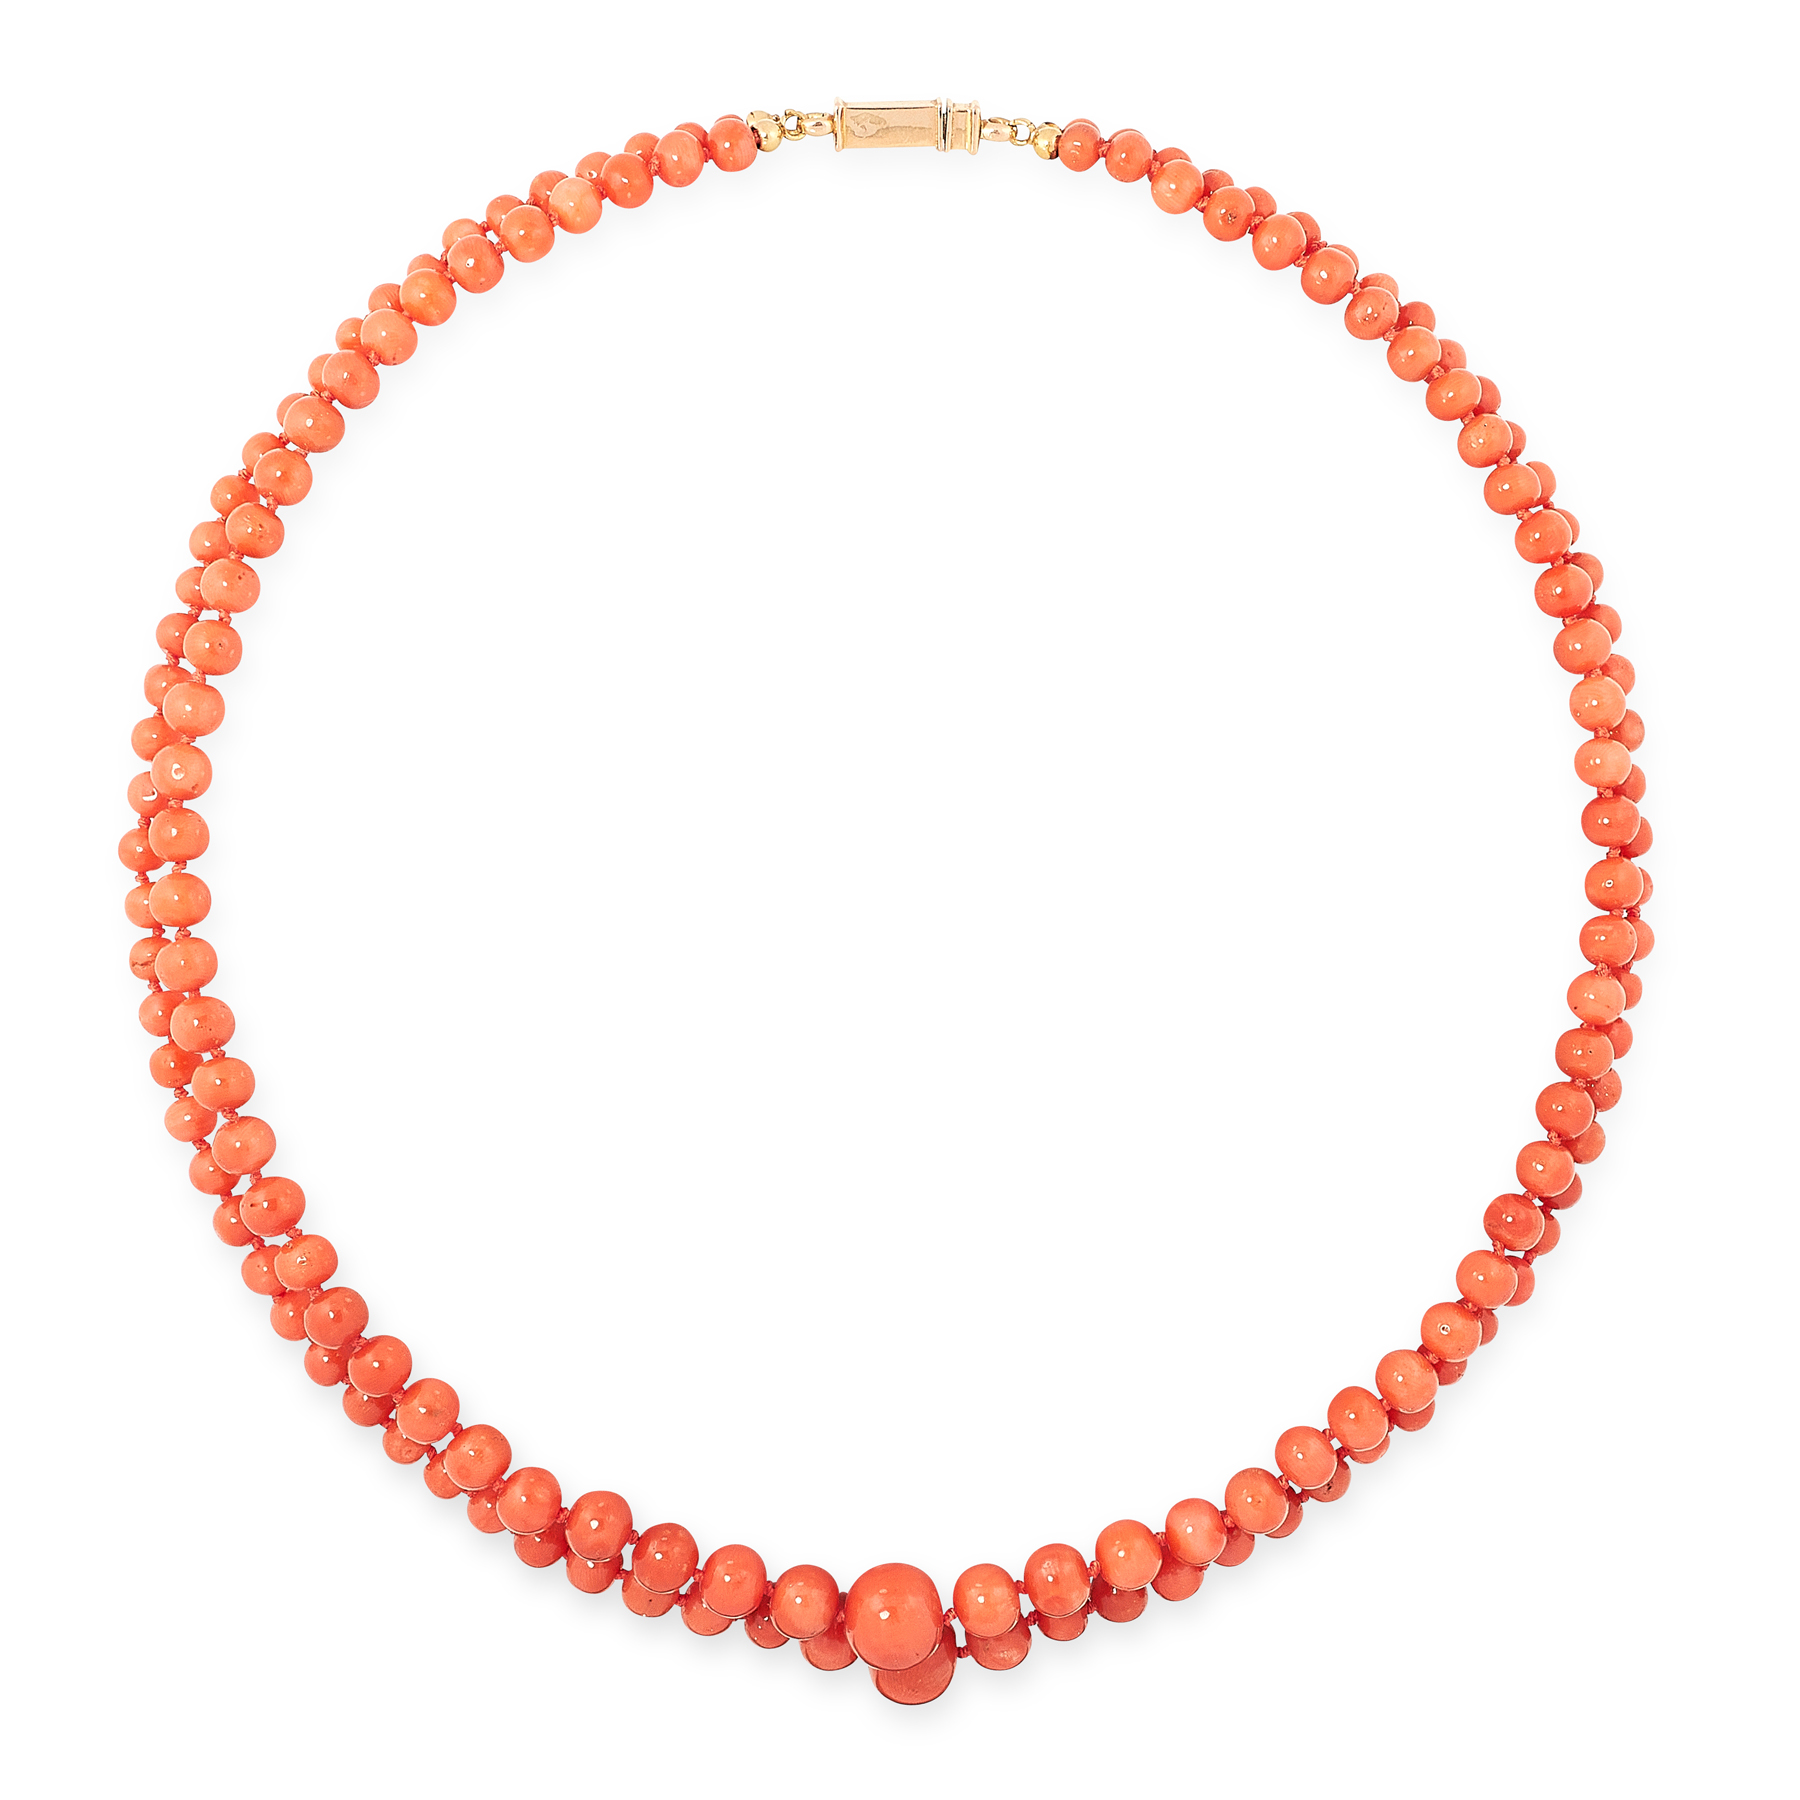 AN ANTIQUE CORAL BEAD NECKLACE comprising a single row of ninety-five graduated coral beads